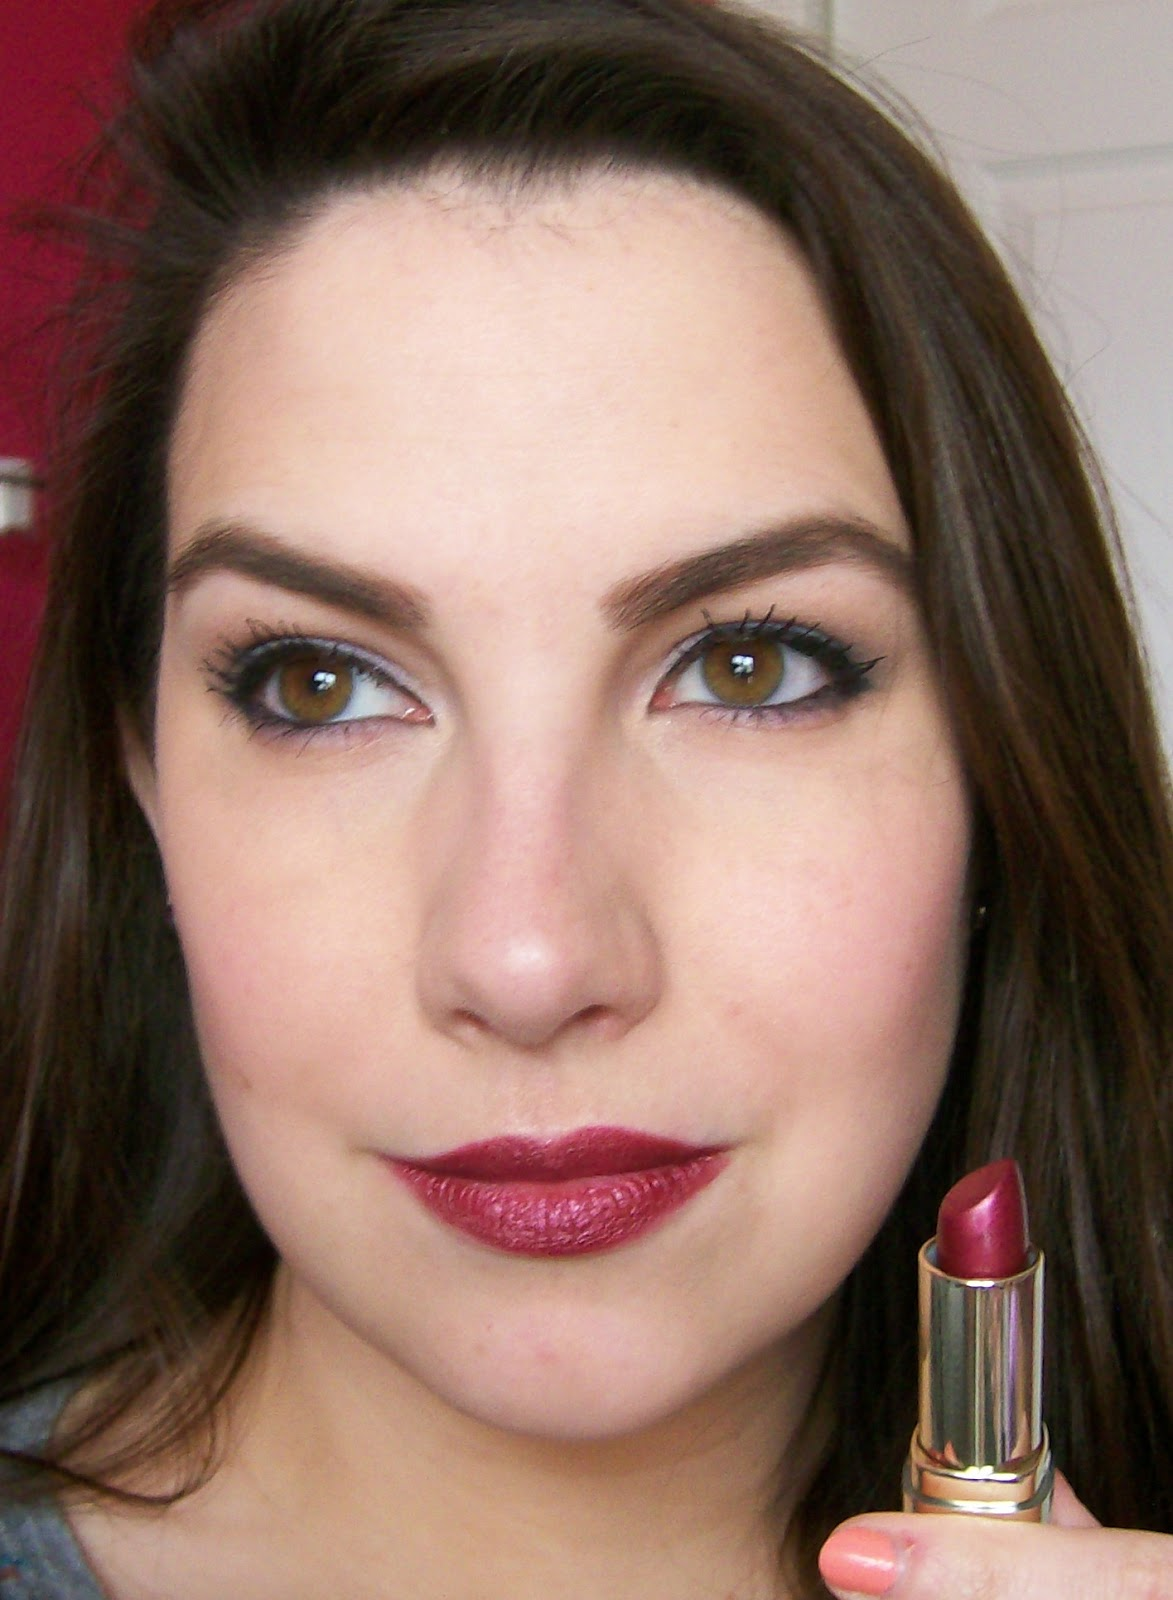 Milani Color Statement Lipstick: Plums & Berries